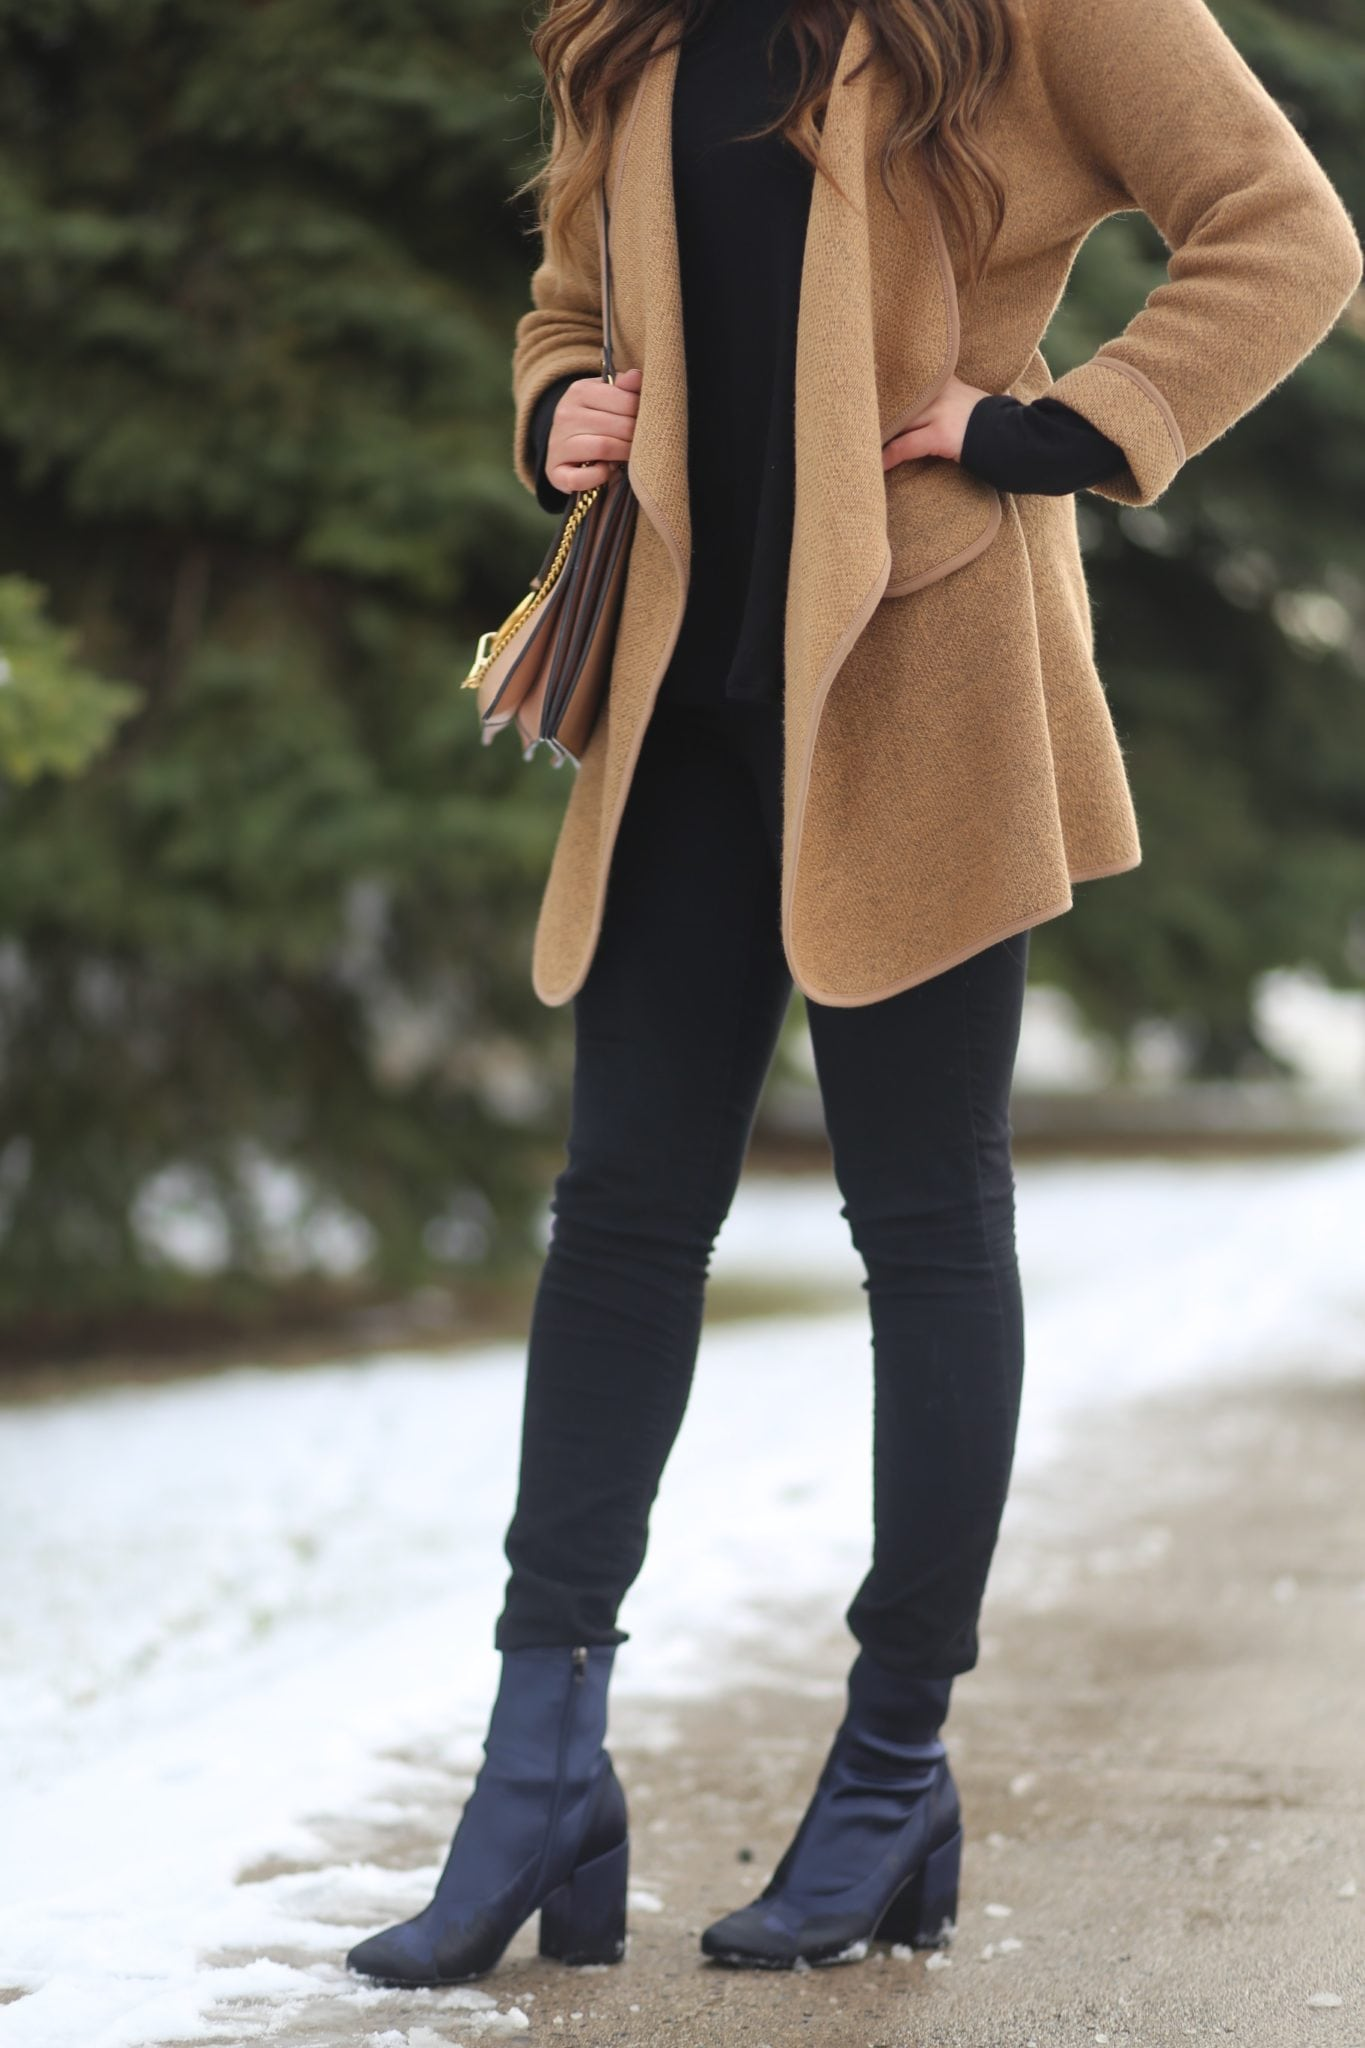 best friend | matching booties | shoe style outfit | winter fashion | beauty blogger Mash Elle | Marie's bazaar |  Marc Fisher giveaway